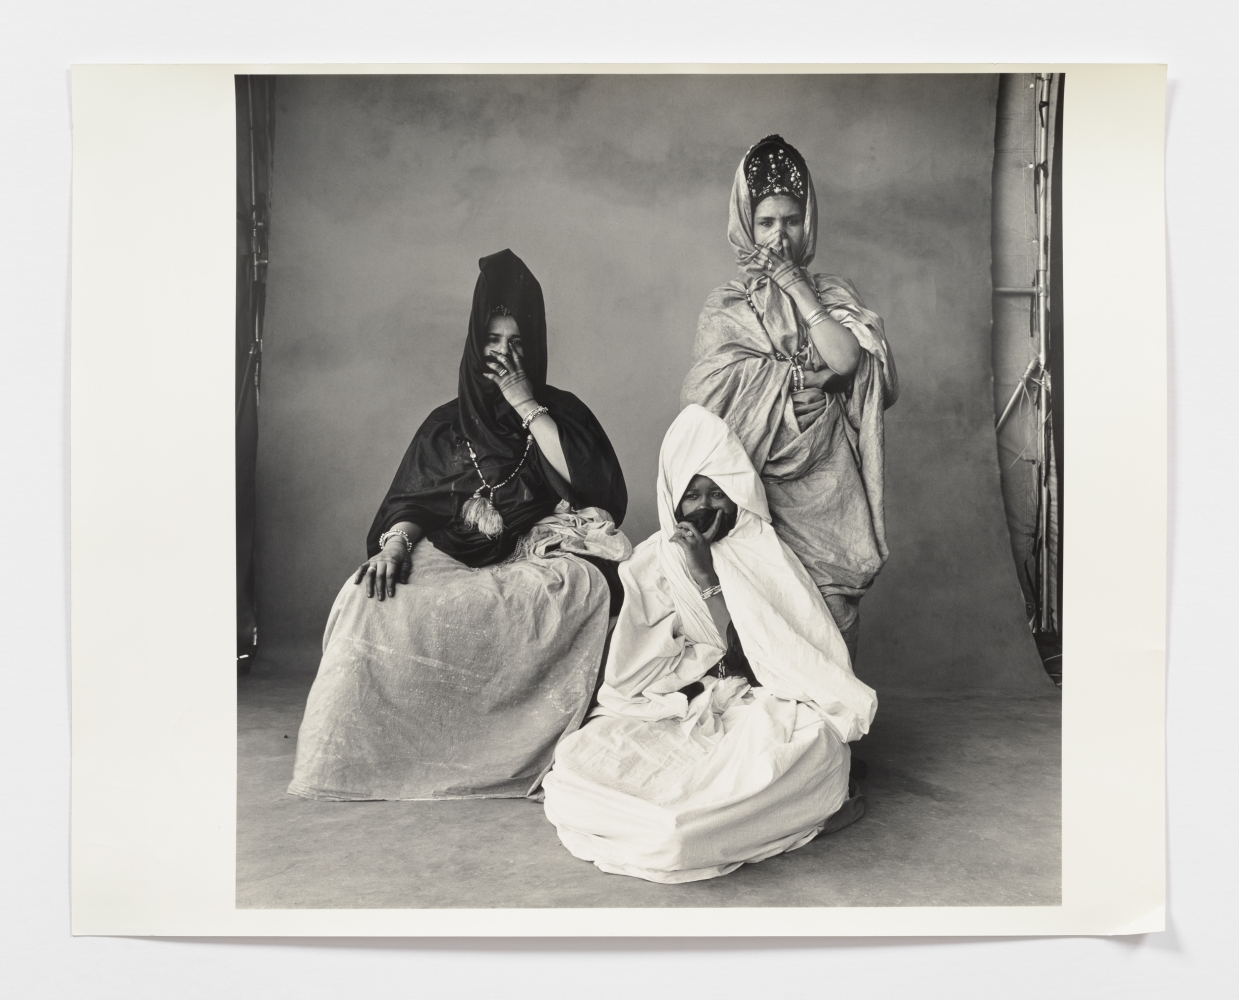 Black and white photograph of three women in drapery fabric.